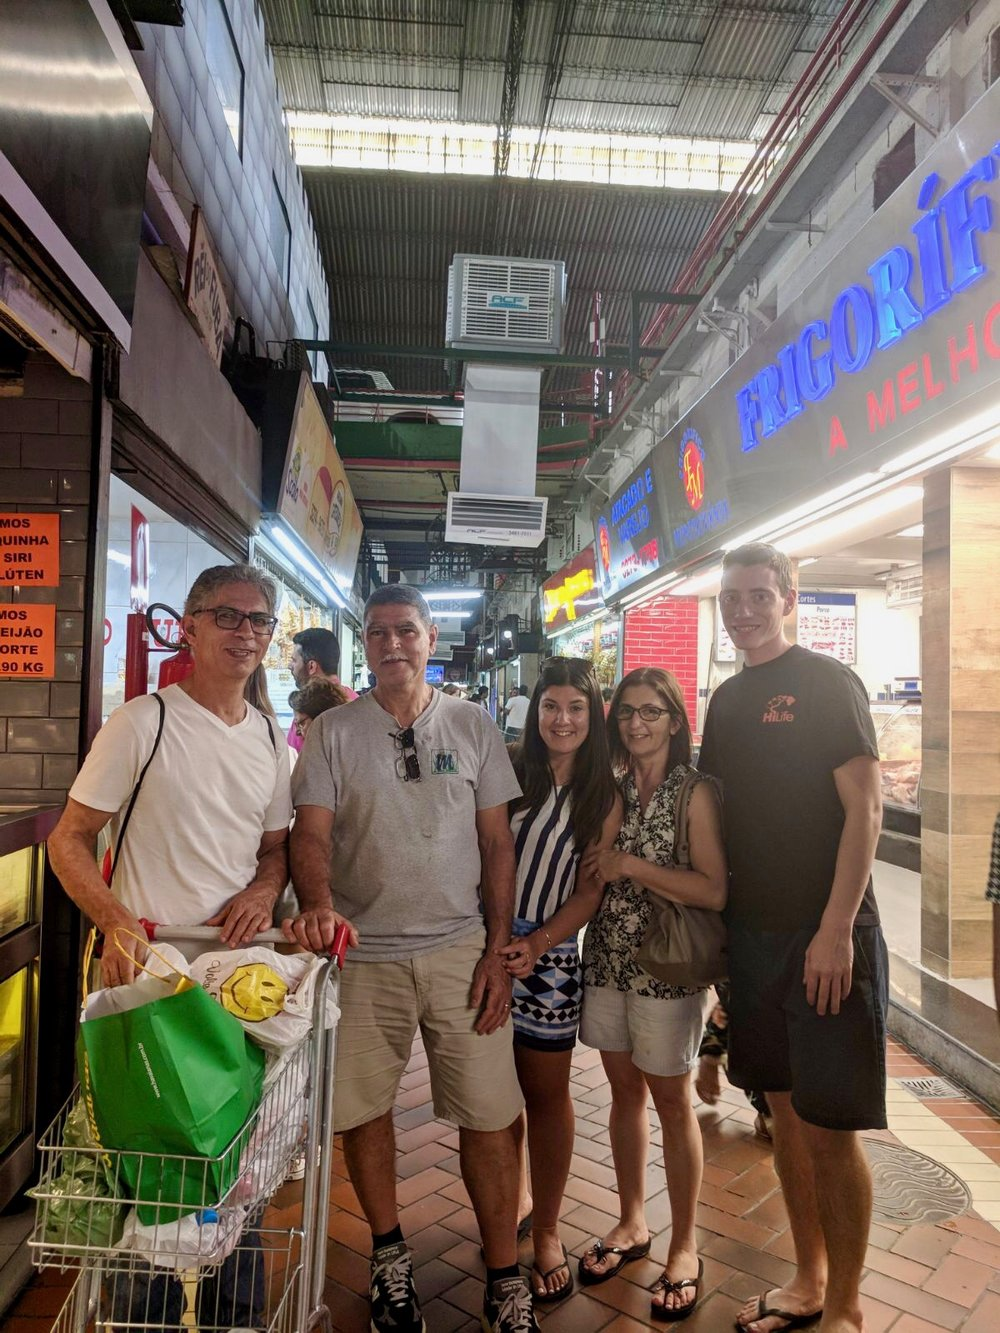 On our last day my aunt and uncle took us shopping at Mercado Central which is a huge indoor marketplace in Belo Horizonte. We got tons of things like bamboo shot glasses (duh), guava paste, spices and havaianas!